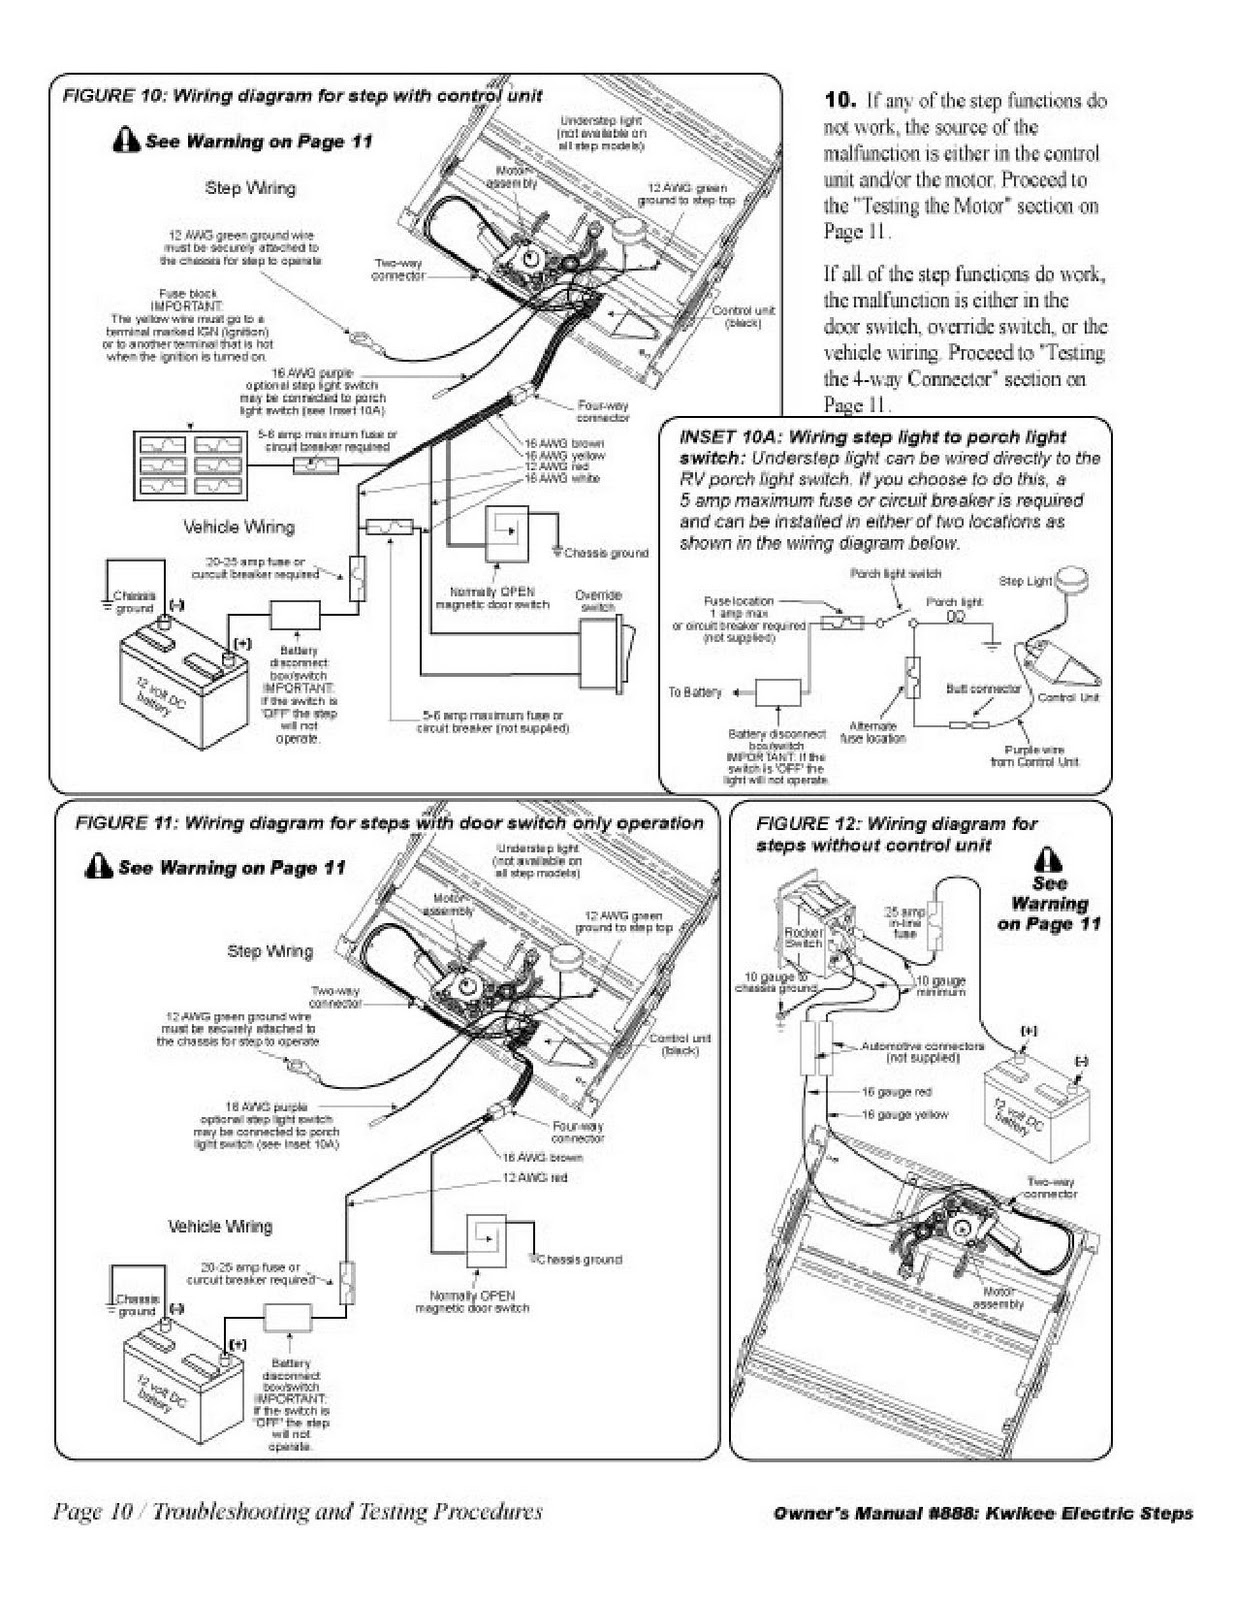 hight resolution of rv step wiring diagram wiring diagram wiring diagram for rv step